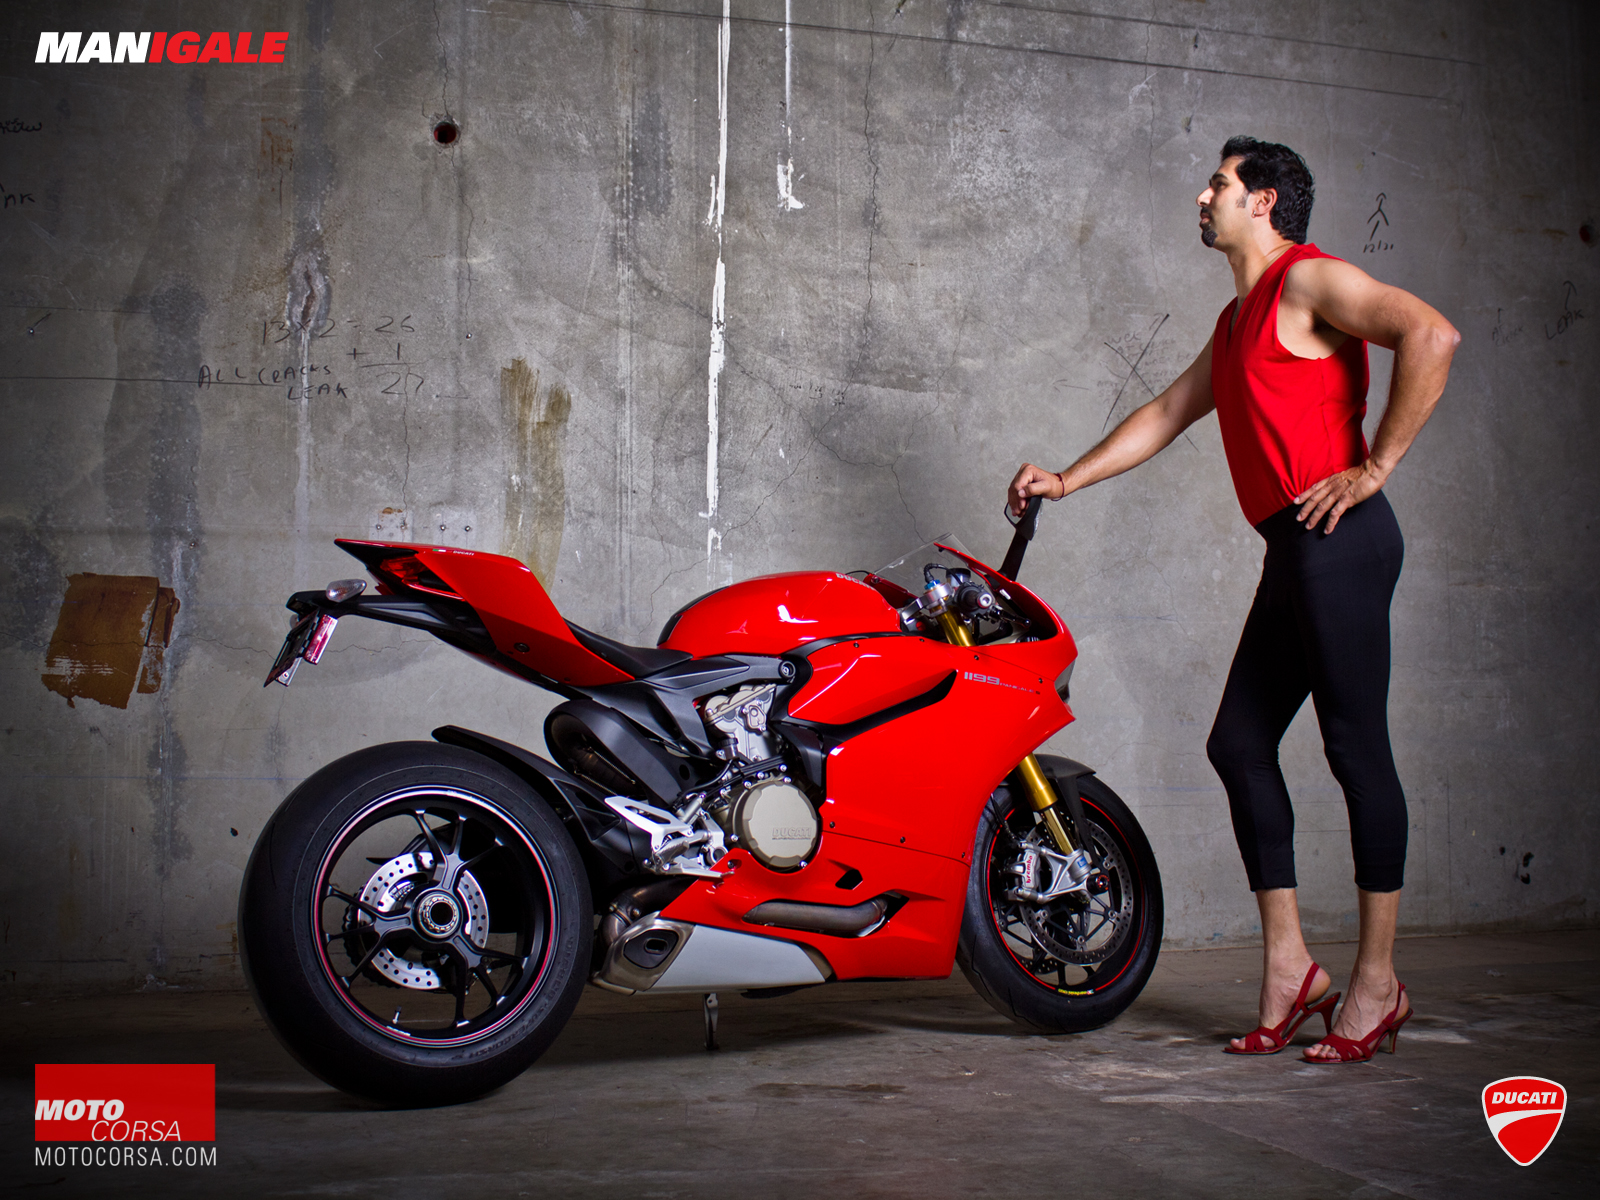 manigale-ducati-1199-wallpaper-07-1600x1200